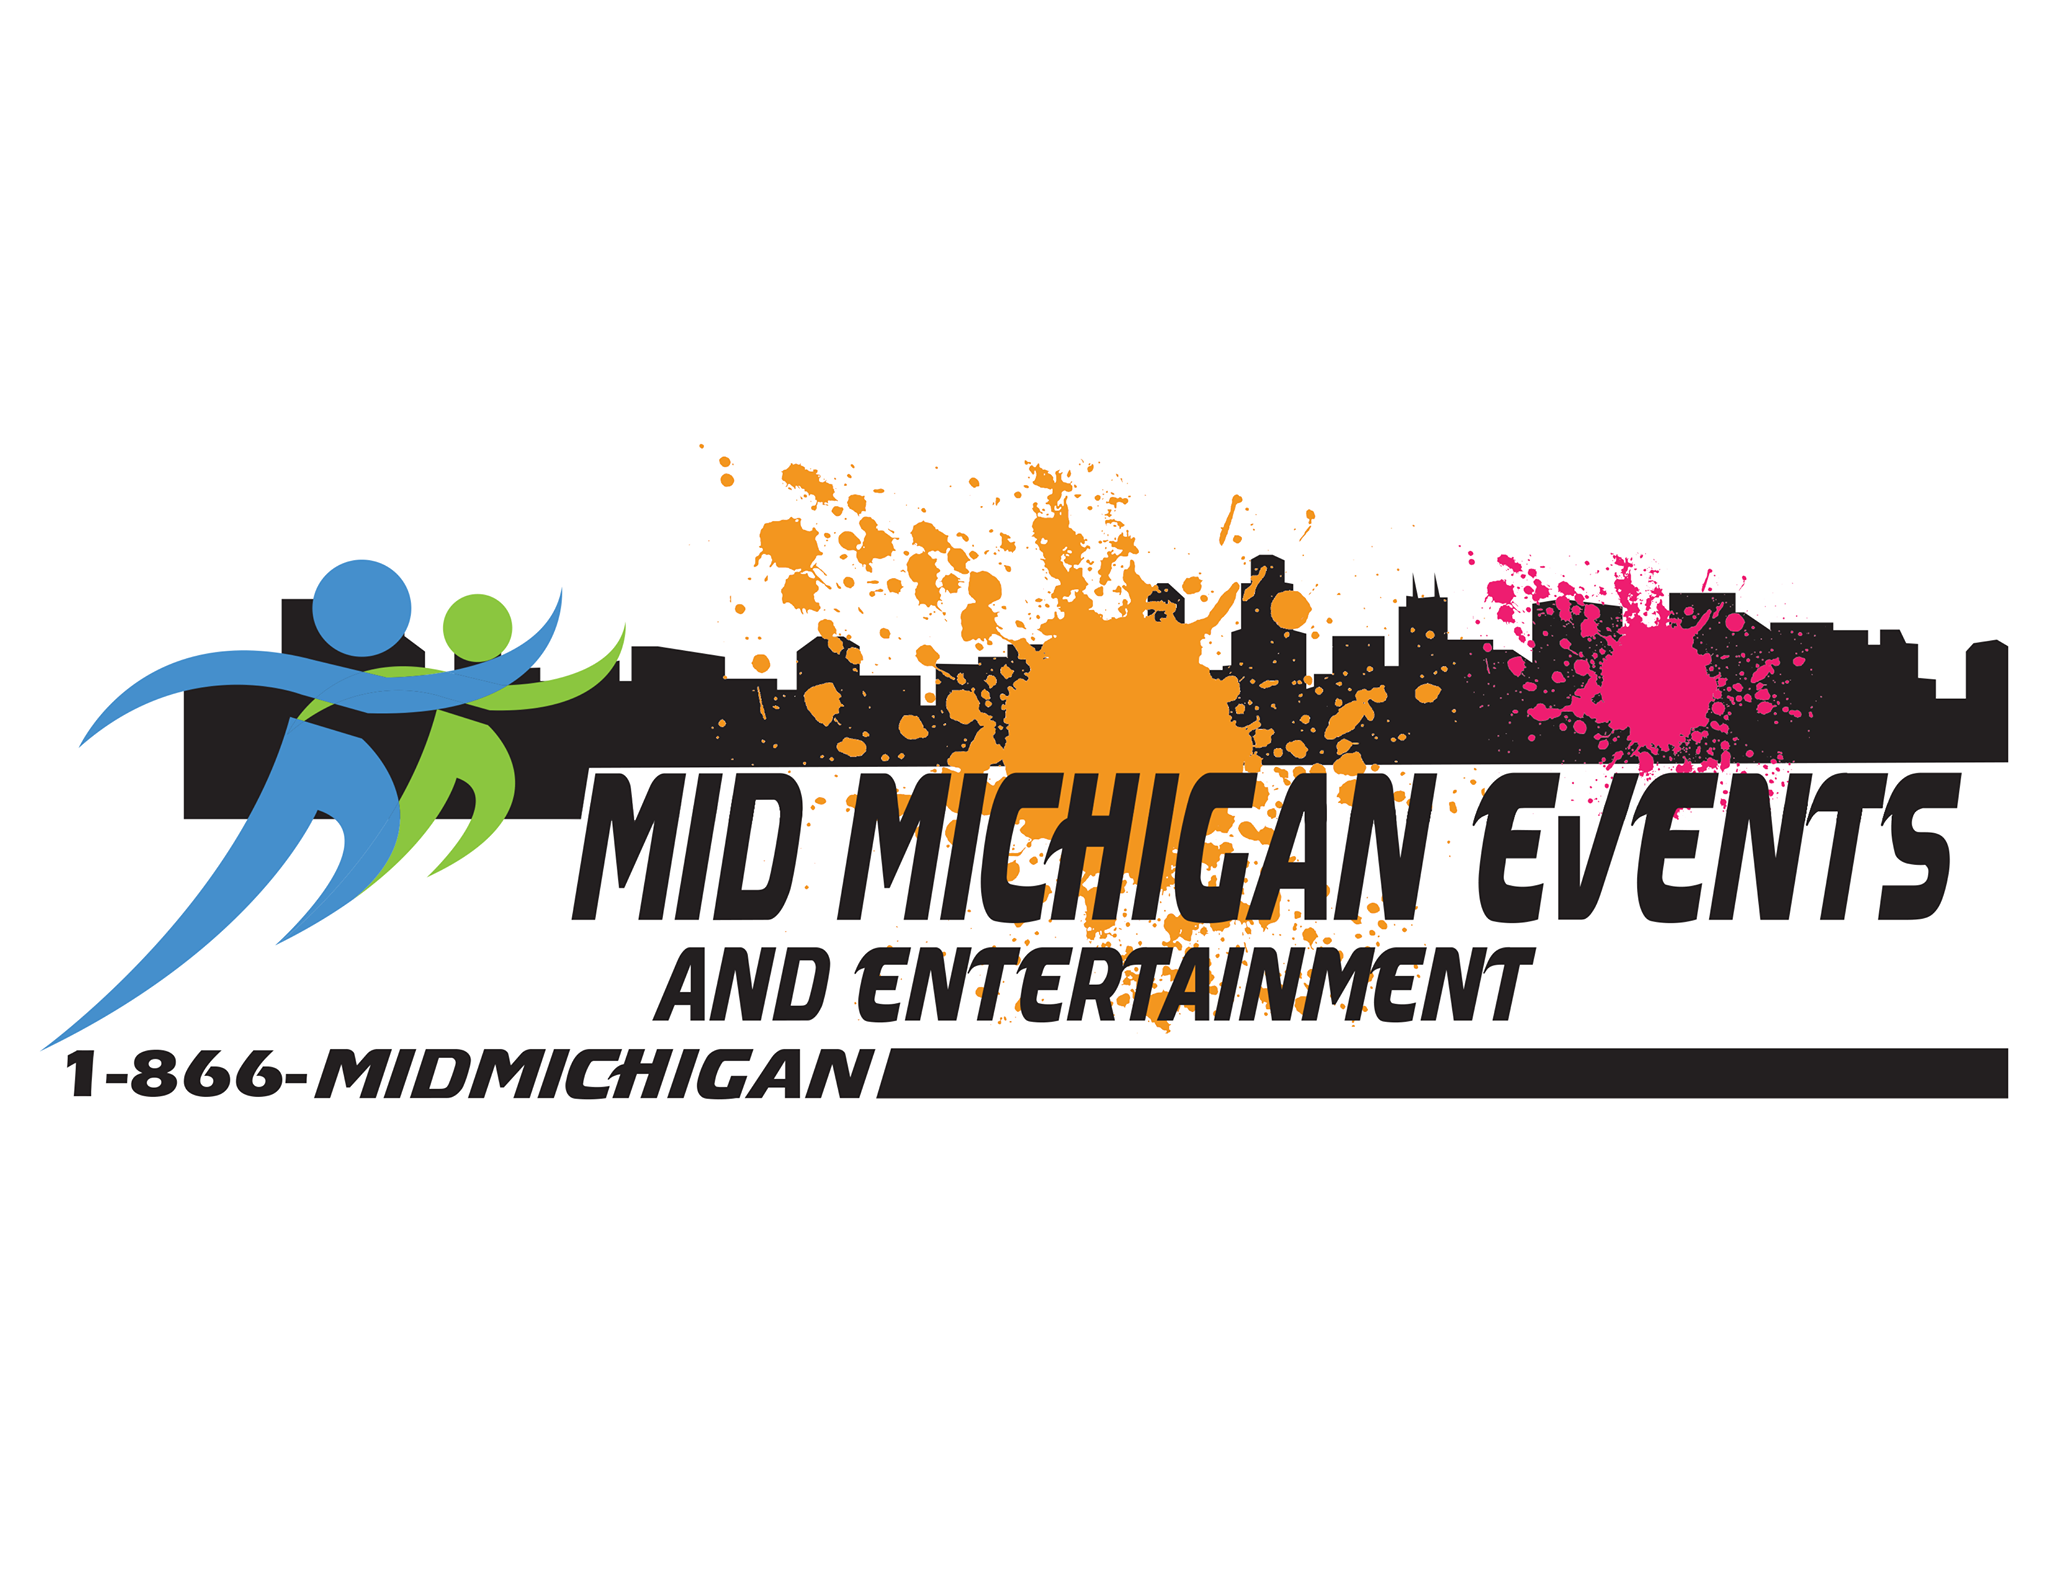 Mid Michigan Events and Entertainment Offers Superior Tent Rentals Deals in Midland